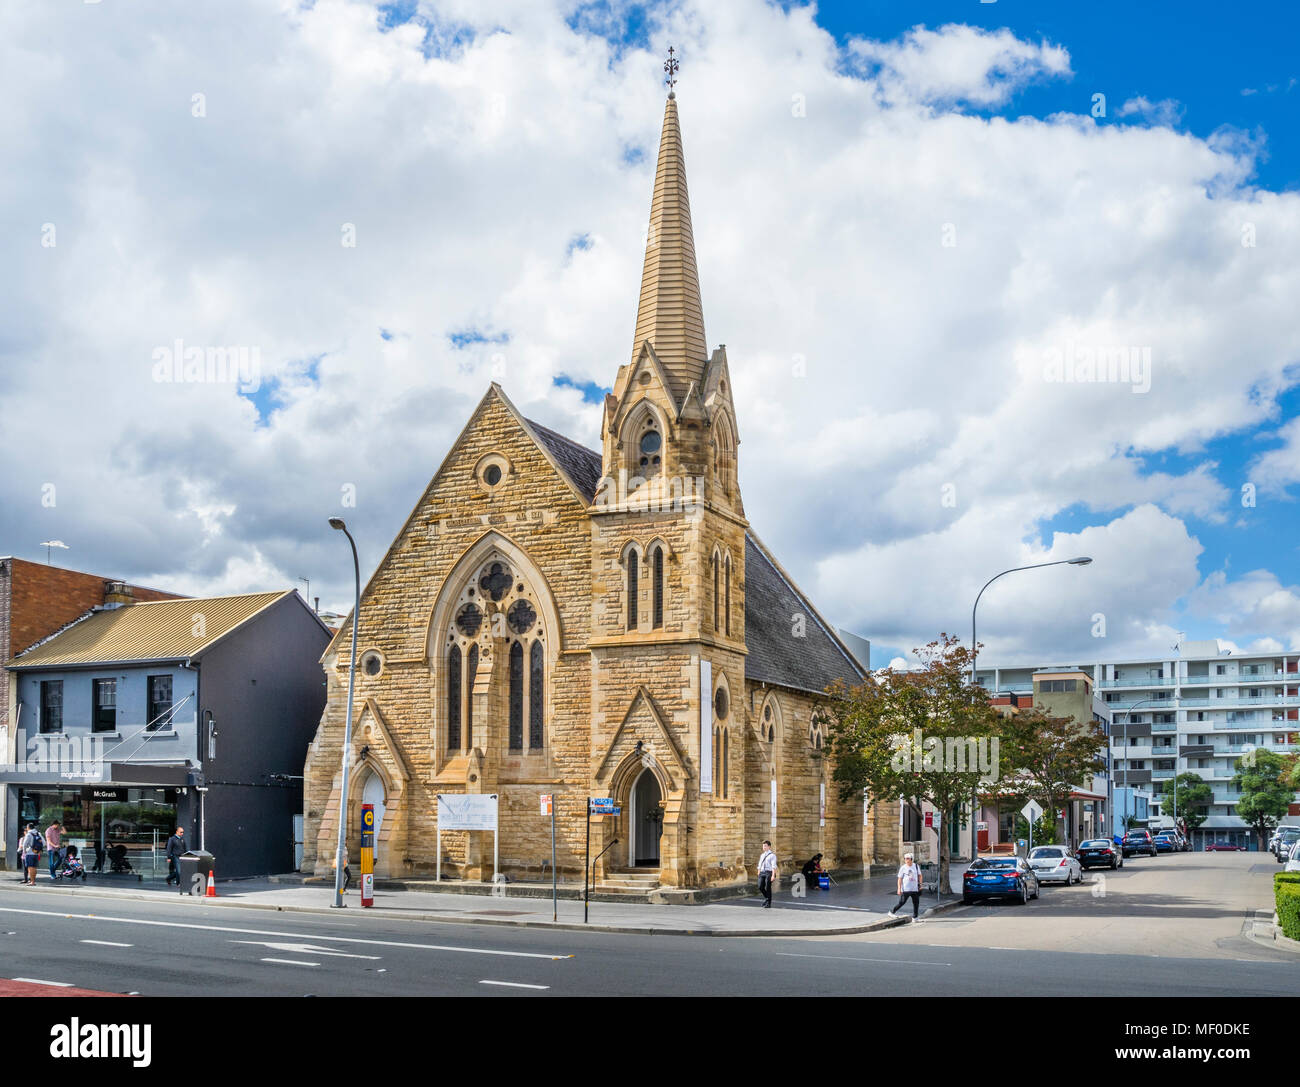 former Congregational Church at Church Street, Victorian Gothic sandstone architecture, Parramatta, the economic capital of Greater Western Sydney, Ne - Stock Image